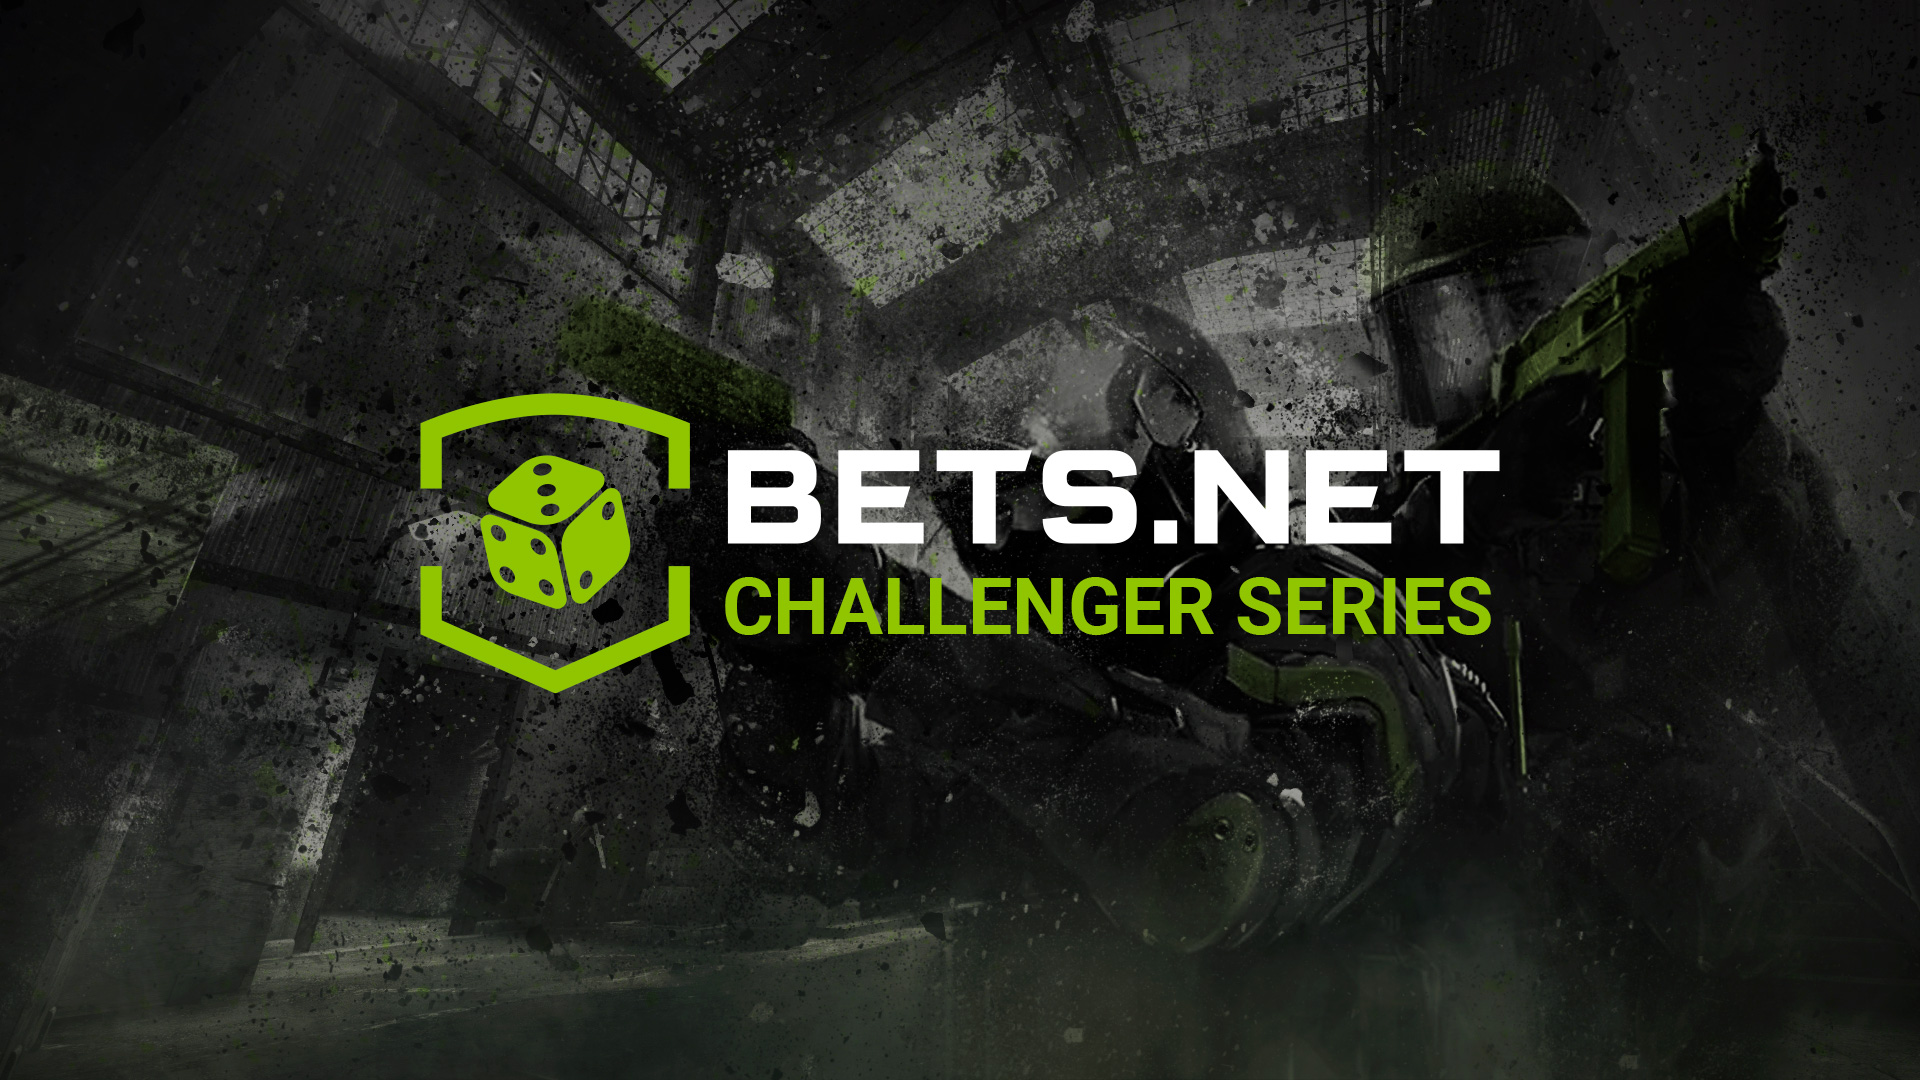 5on5 csgo betting skylands download 1-3 2-4 betting system